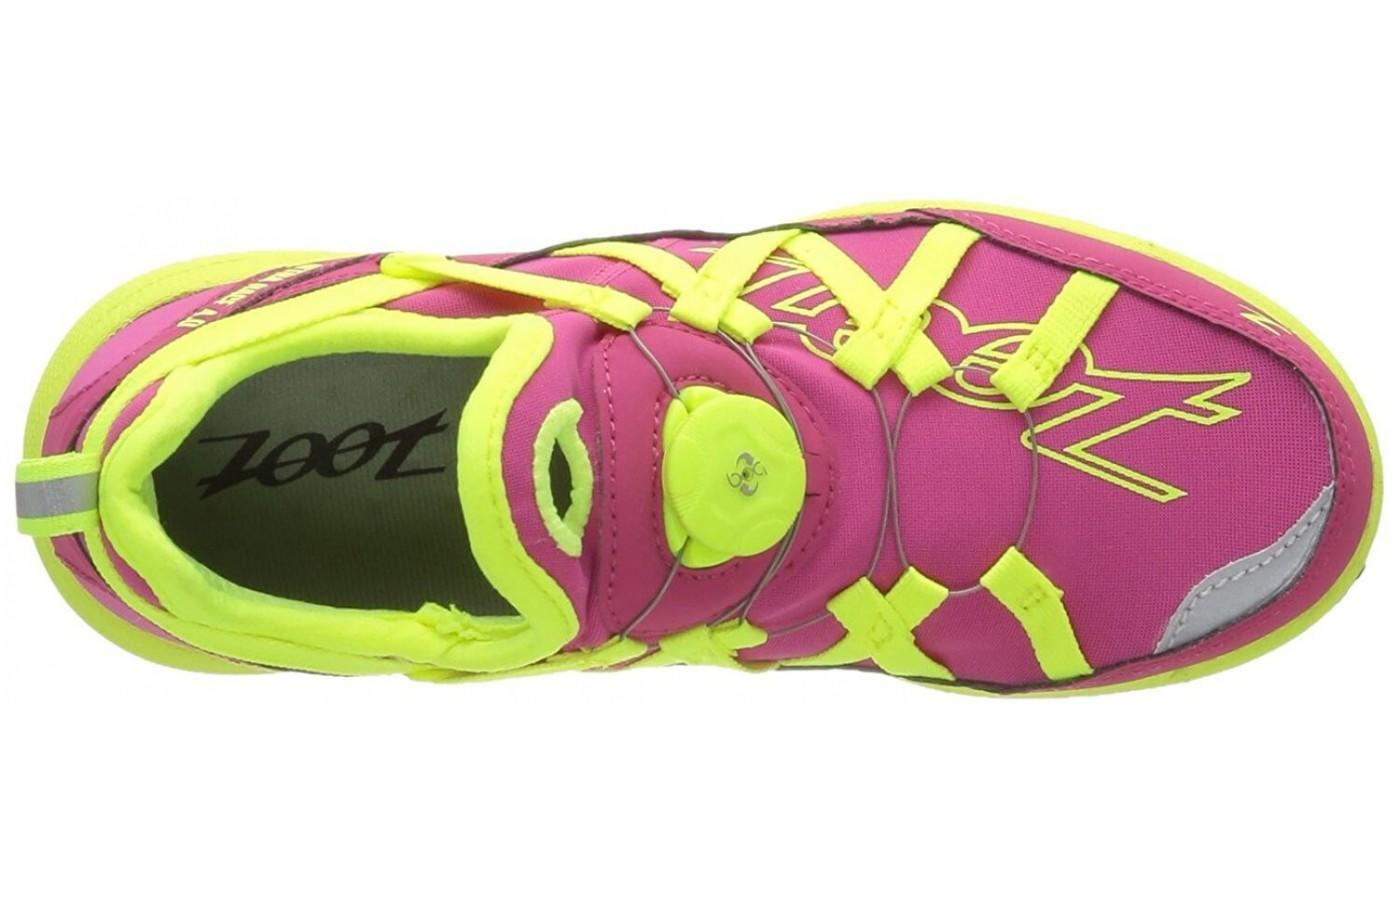 the Zoot Ultra Race 4.0 has an UltraFit upper for form fitting comfort